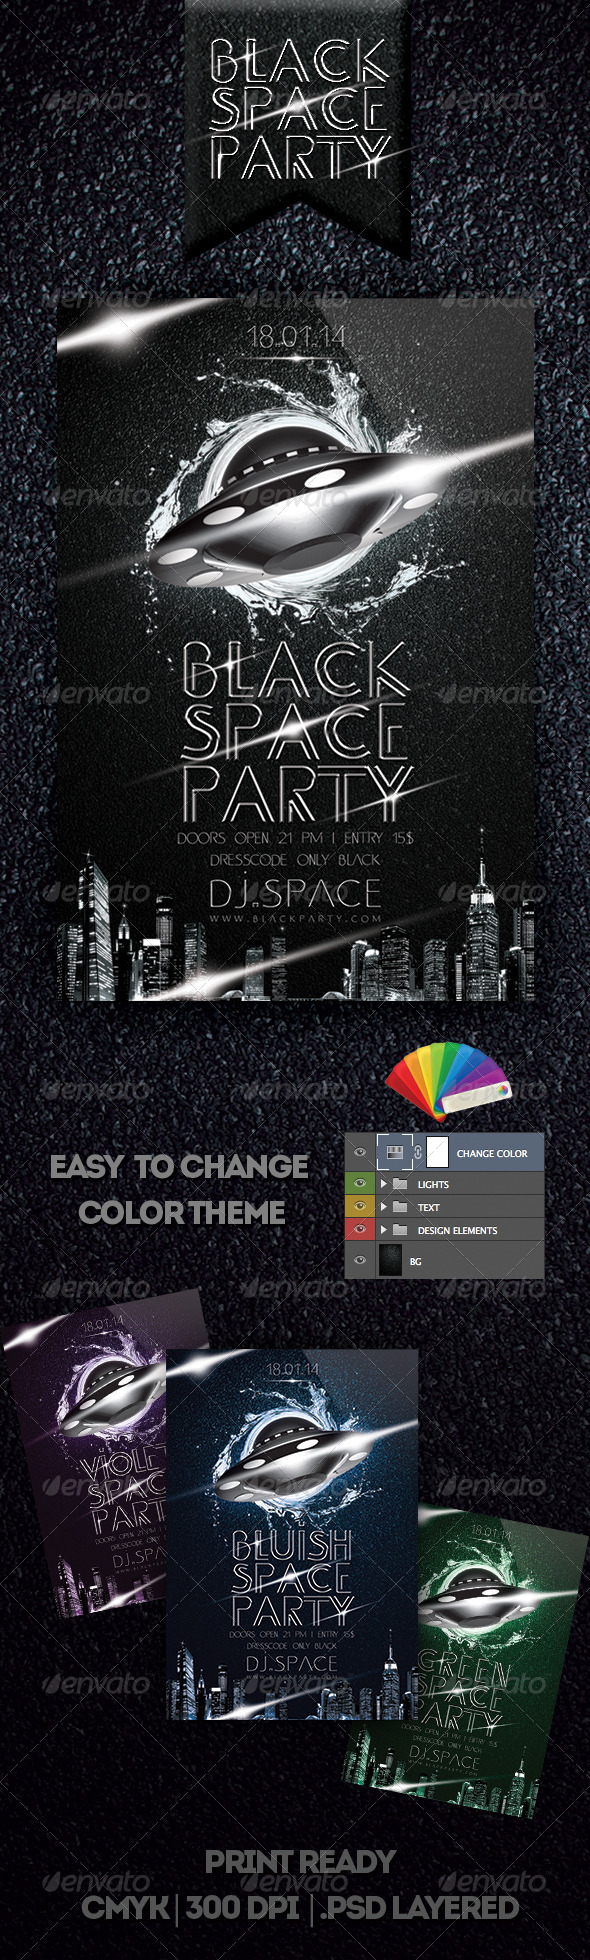 GraphicRiver Black Space Party Flyer 6516802